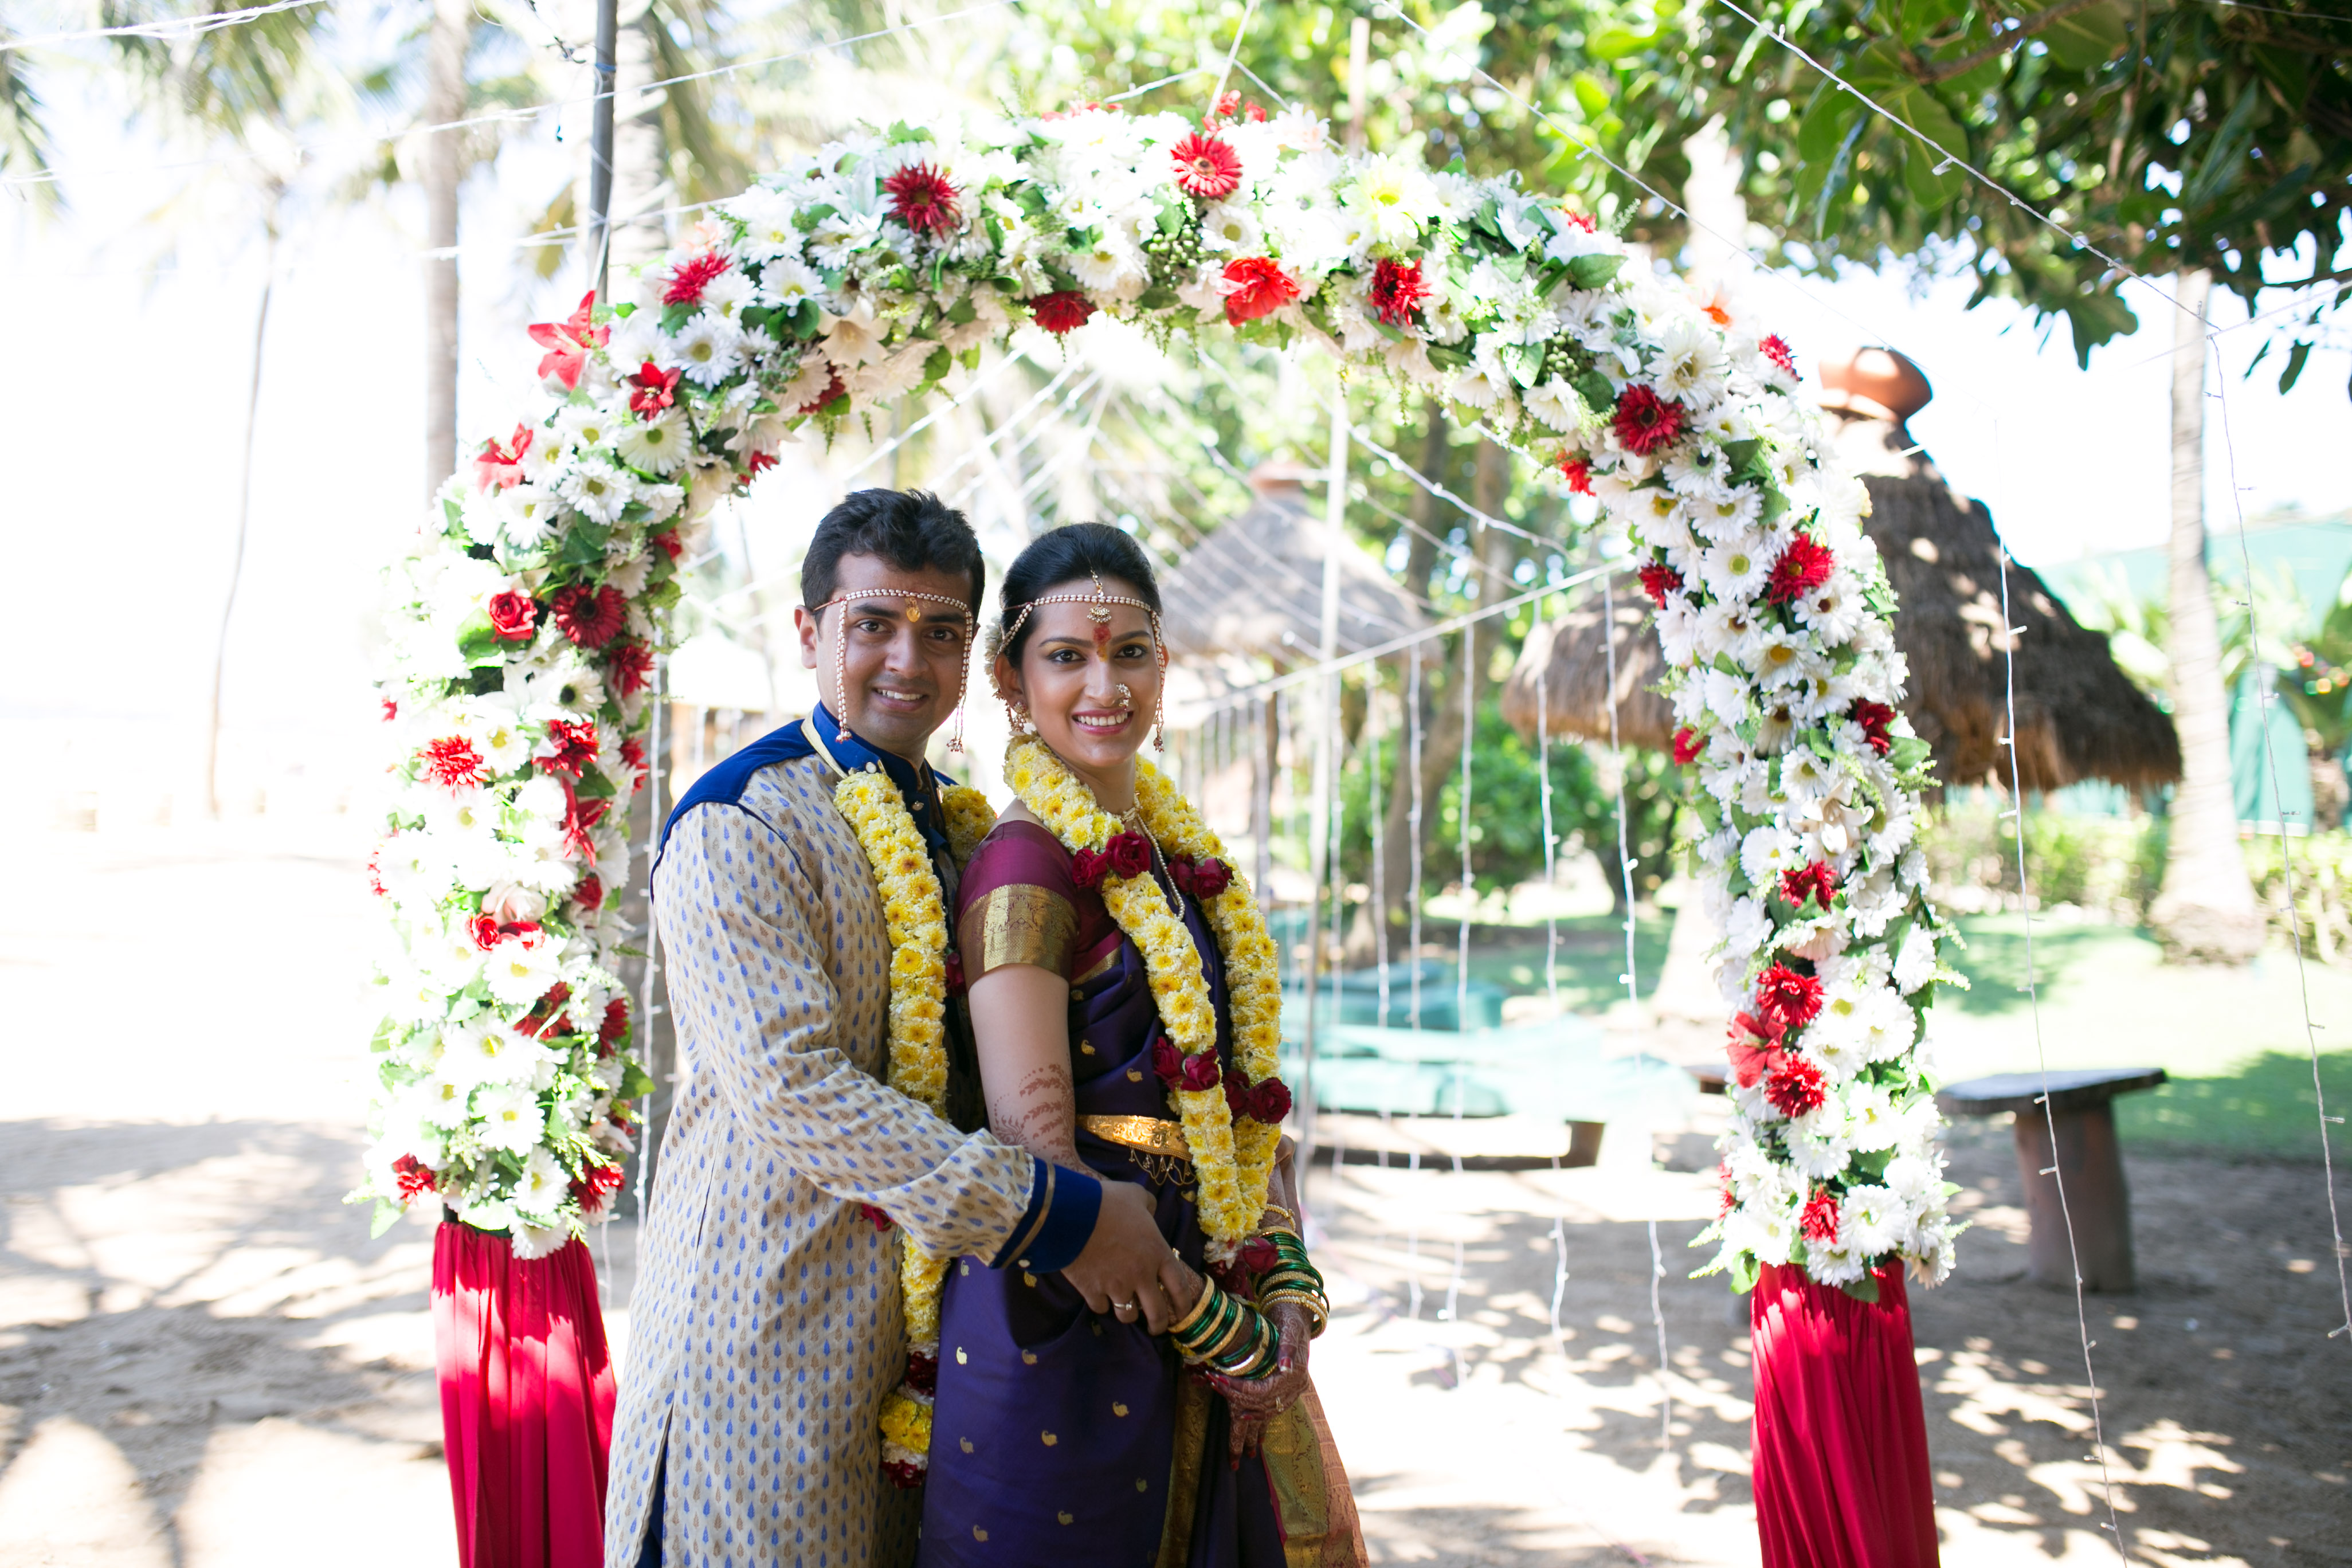 Rujuta and Raunak wedding in Sri Lanka